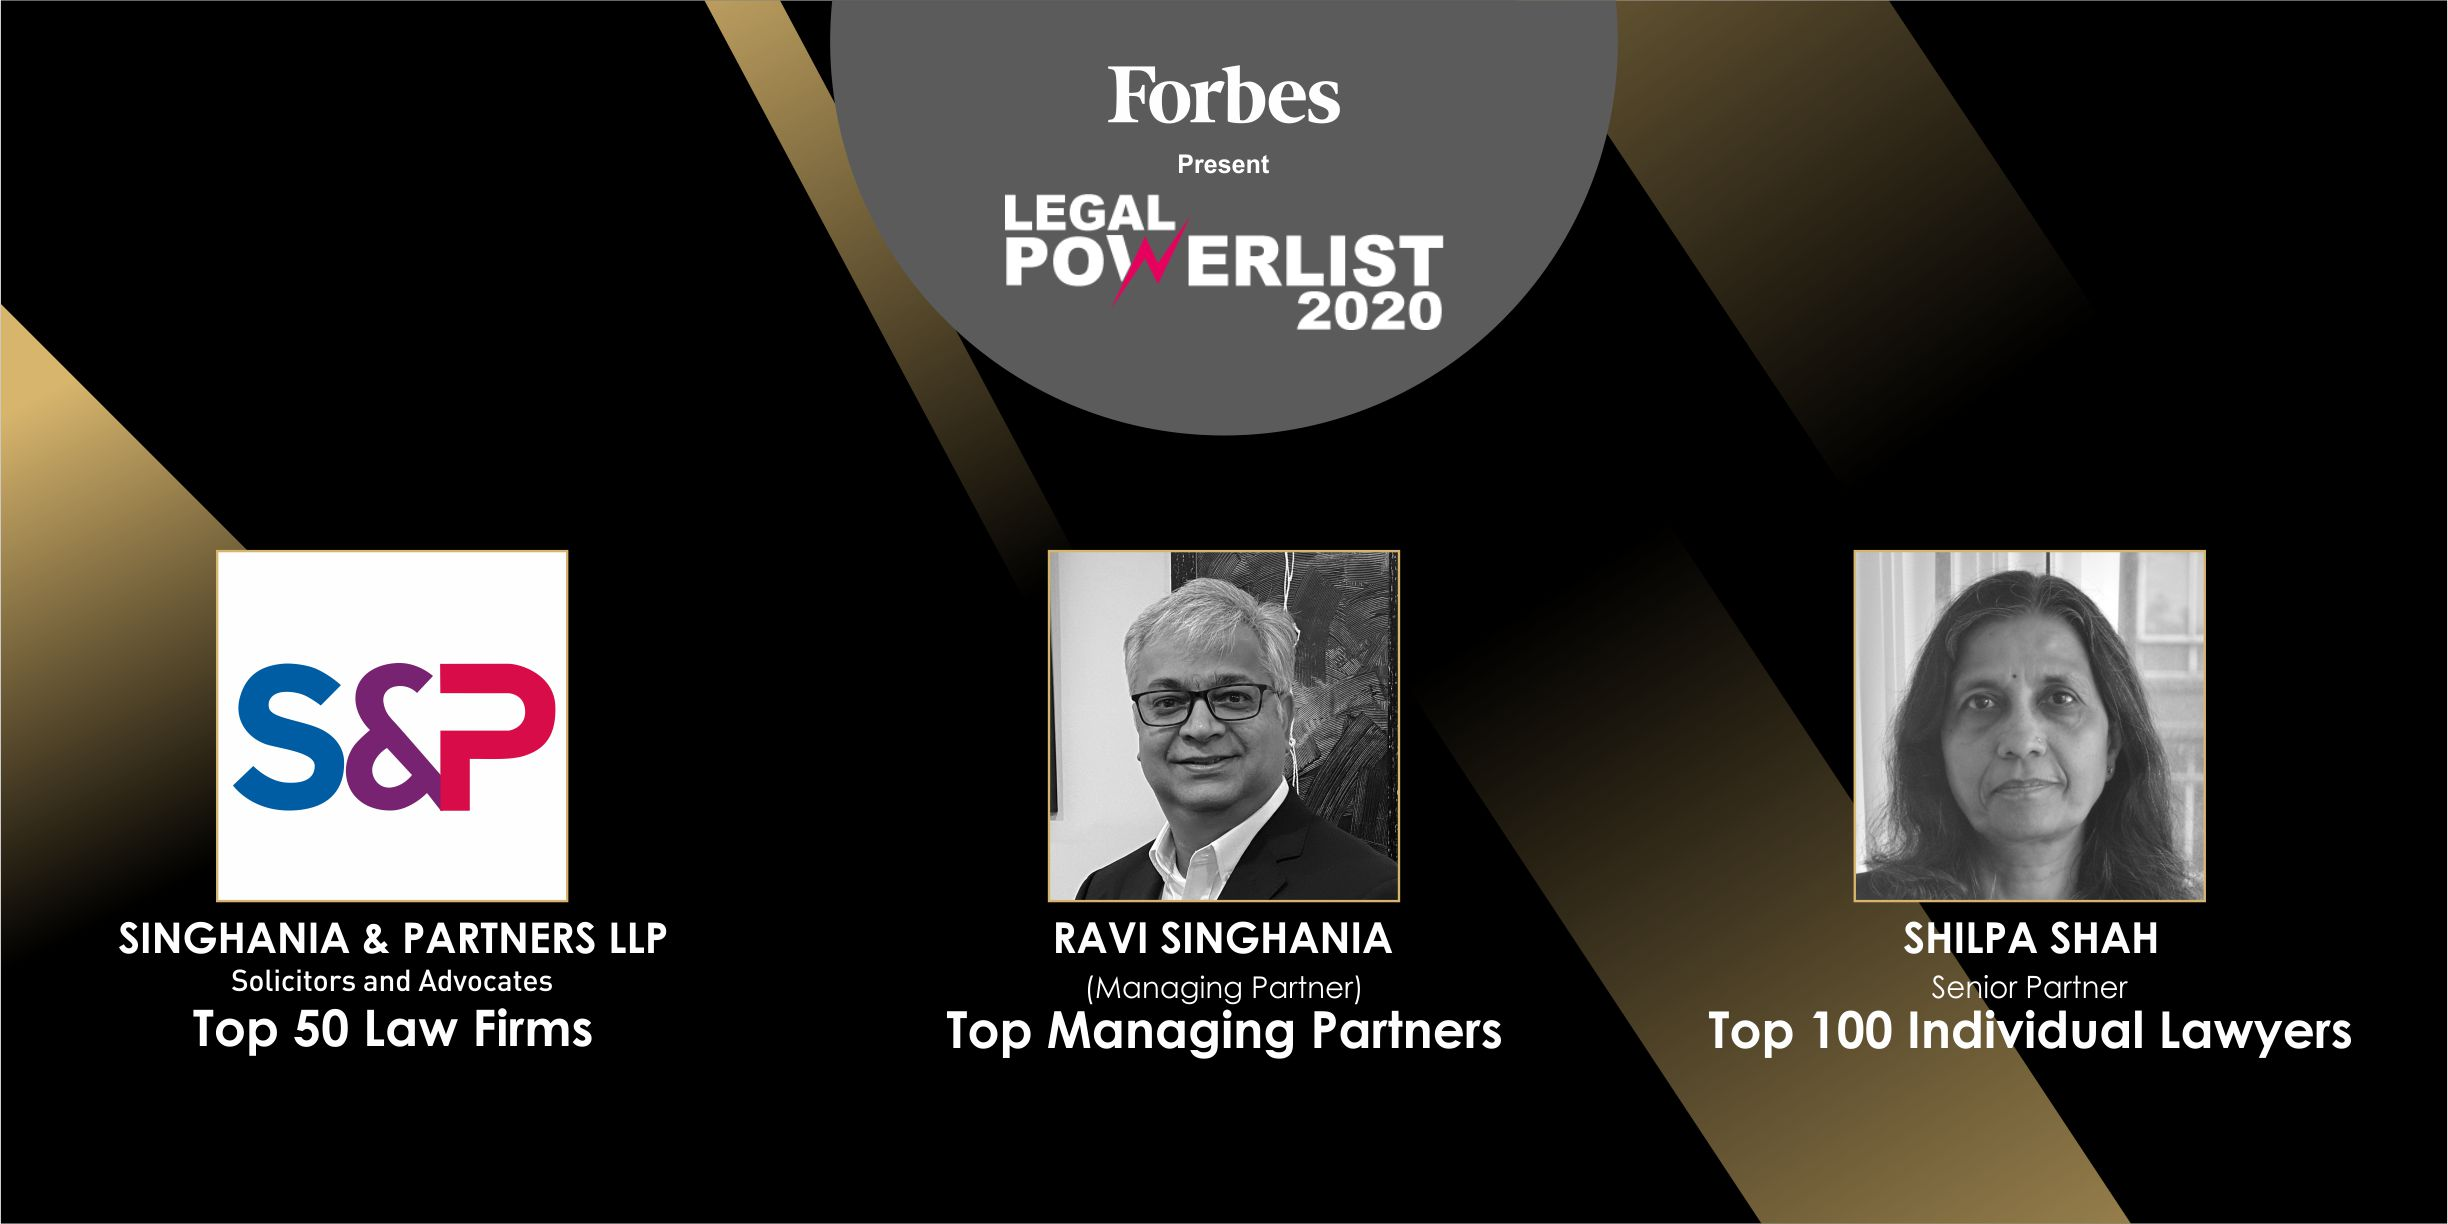 Hat-trick at Forbes India Legal Power List 2020